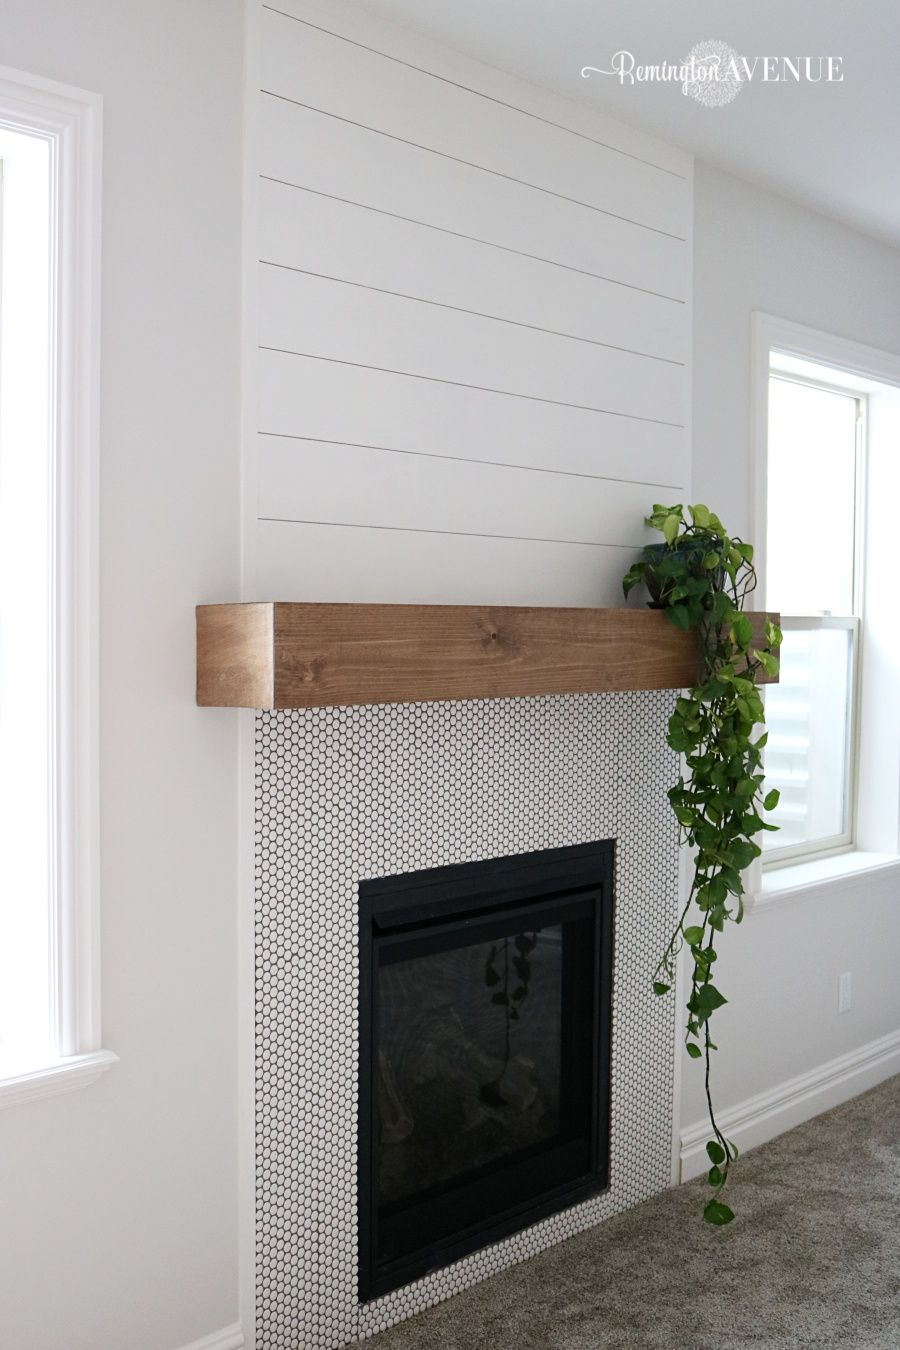 easy diy wood mantel stunning mantels home fireplace floating shelf white love how clean and fresh like this look sell hardware you can create your own unique check out our